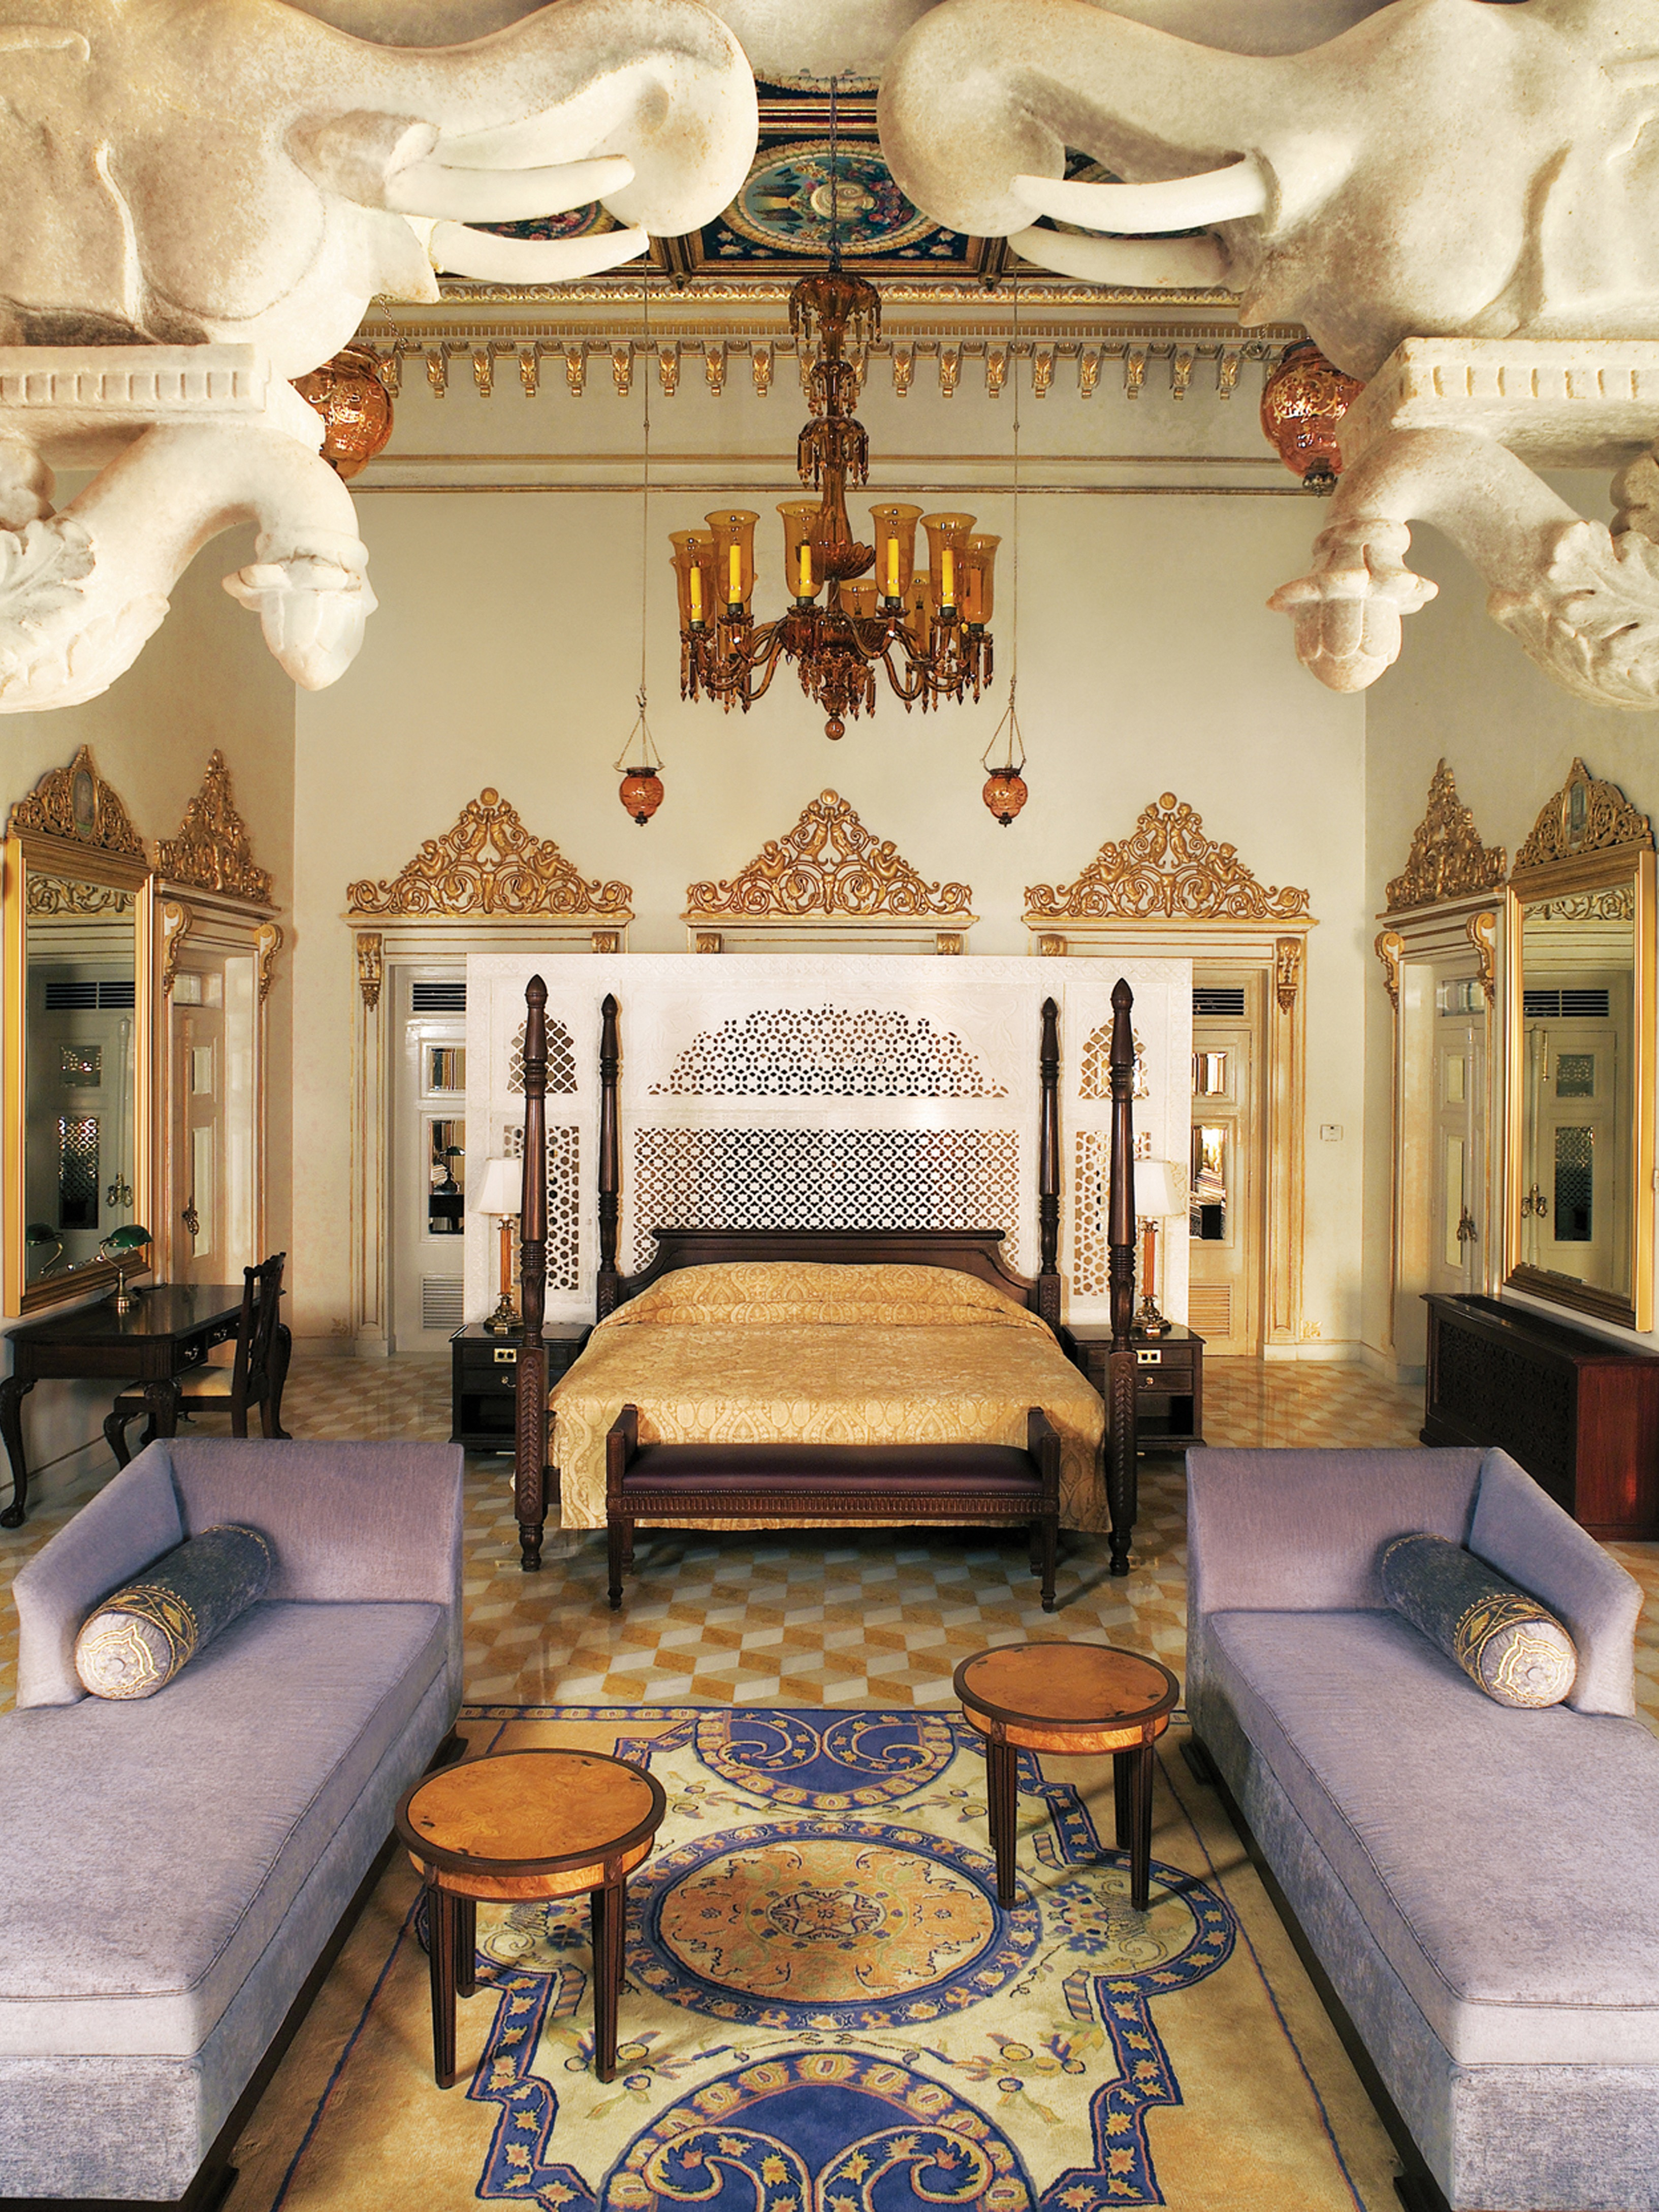 Classy Elaborate Indian Bedroom With Lavender Sofas (View 19 of 30)